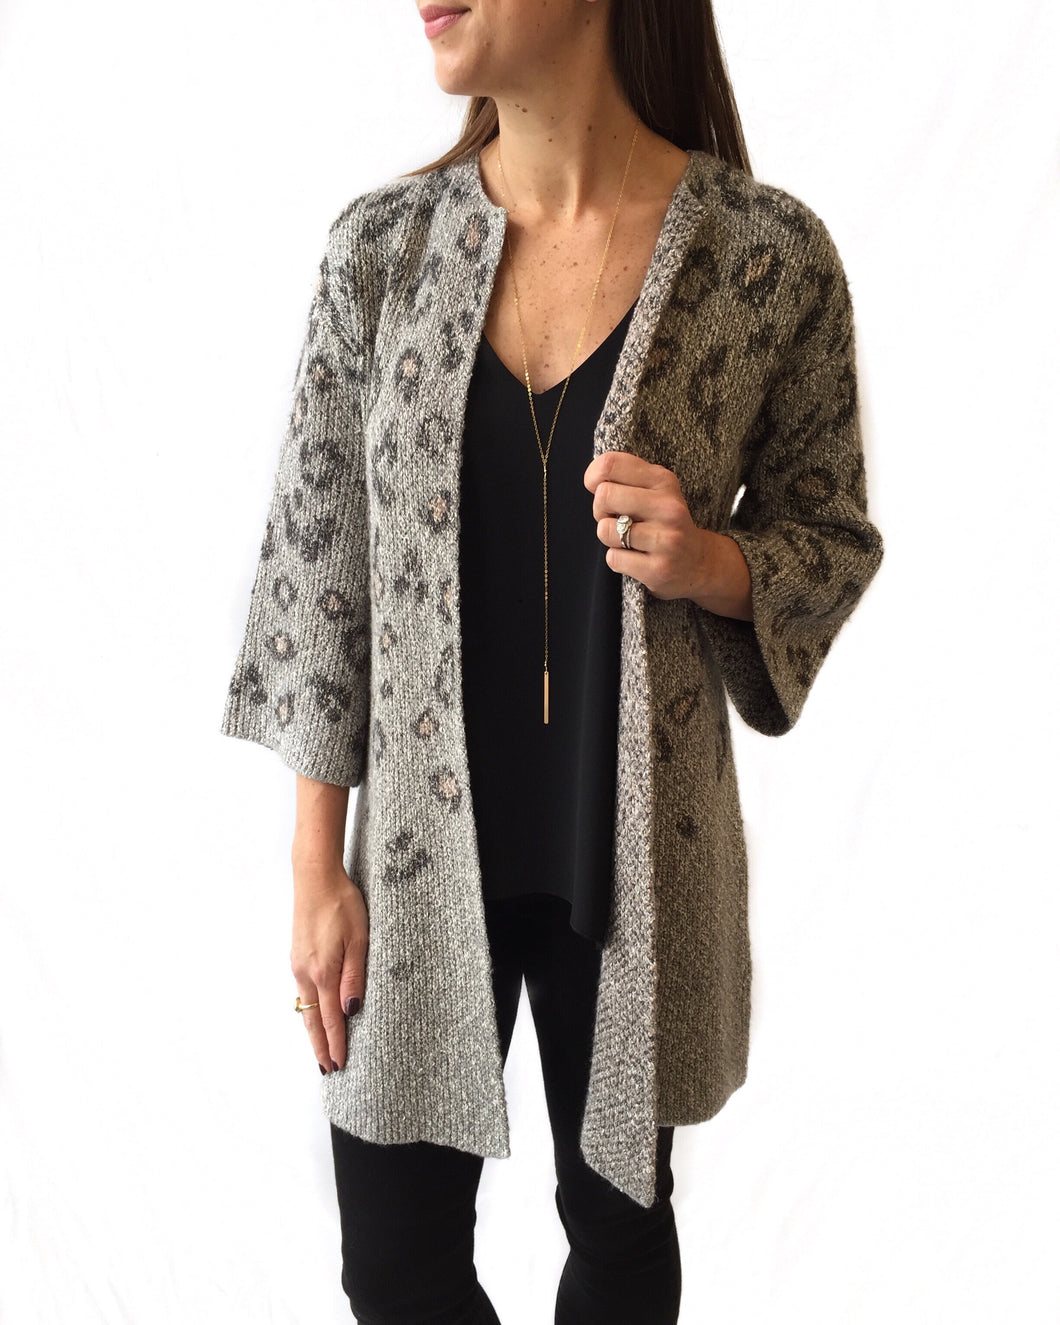 Grey Cheetah Cardigan